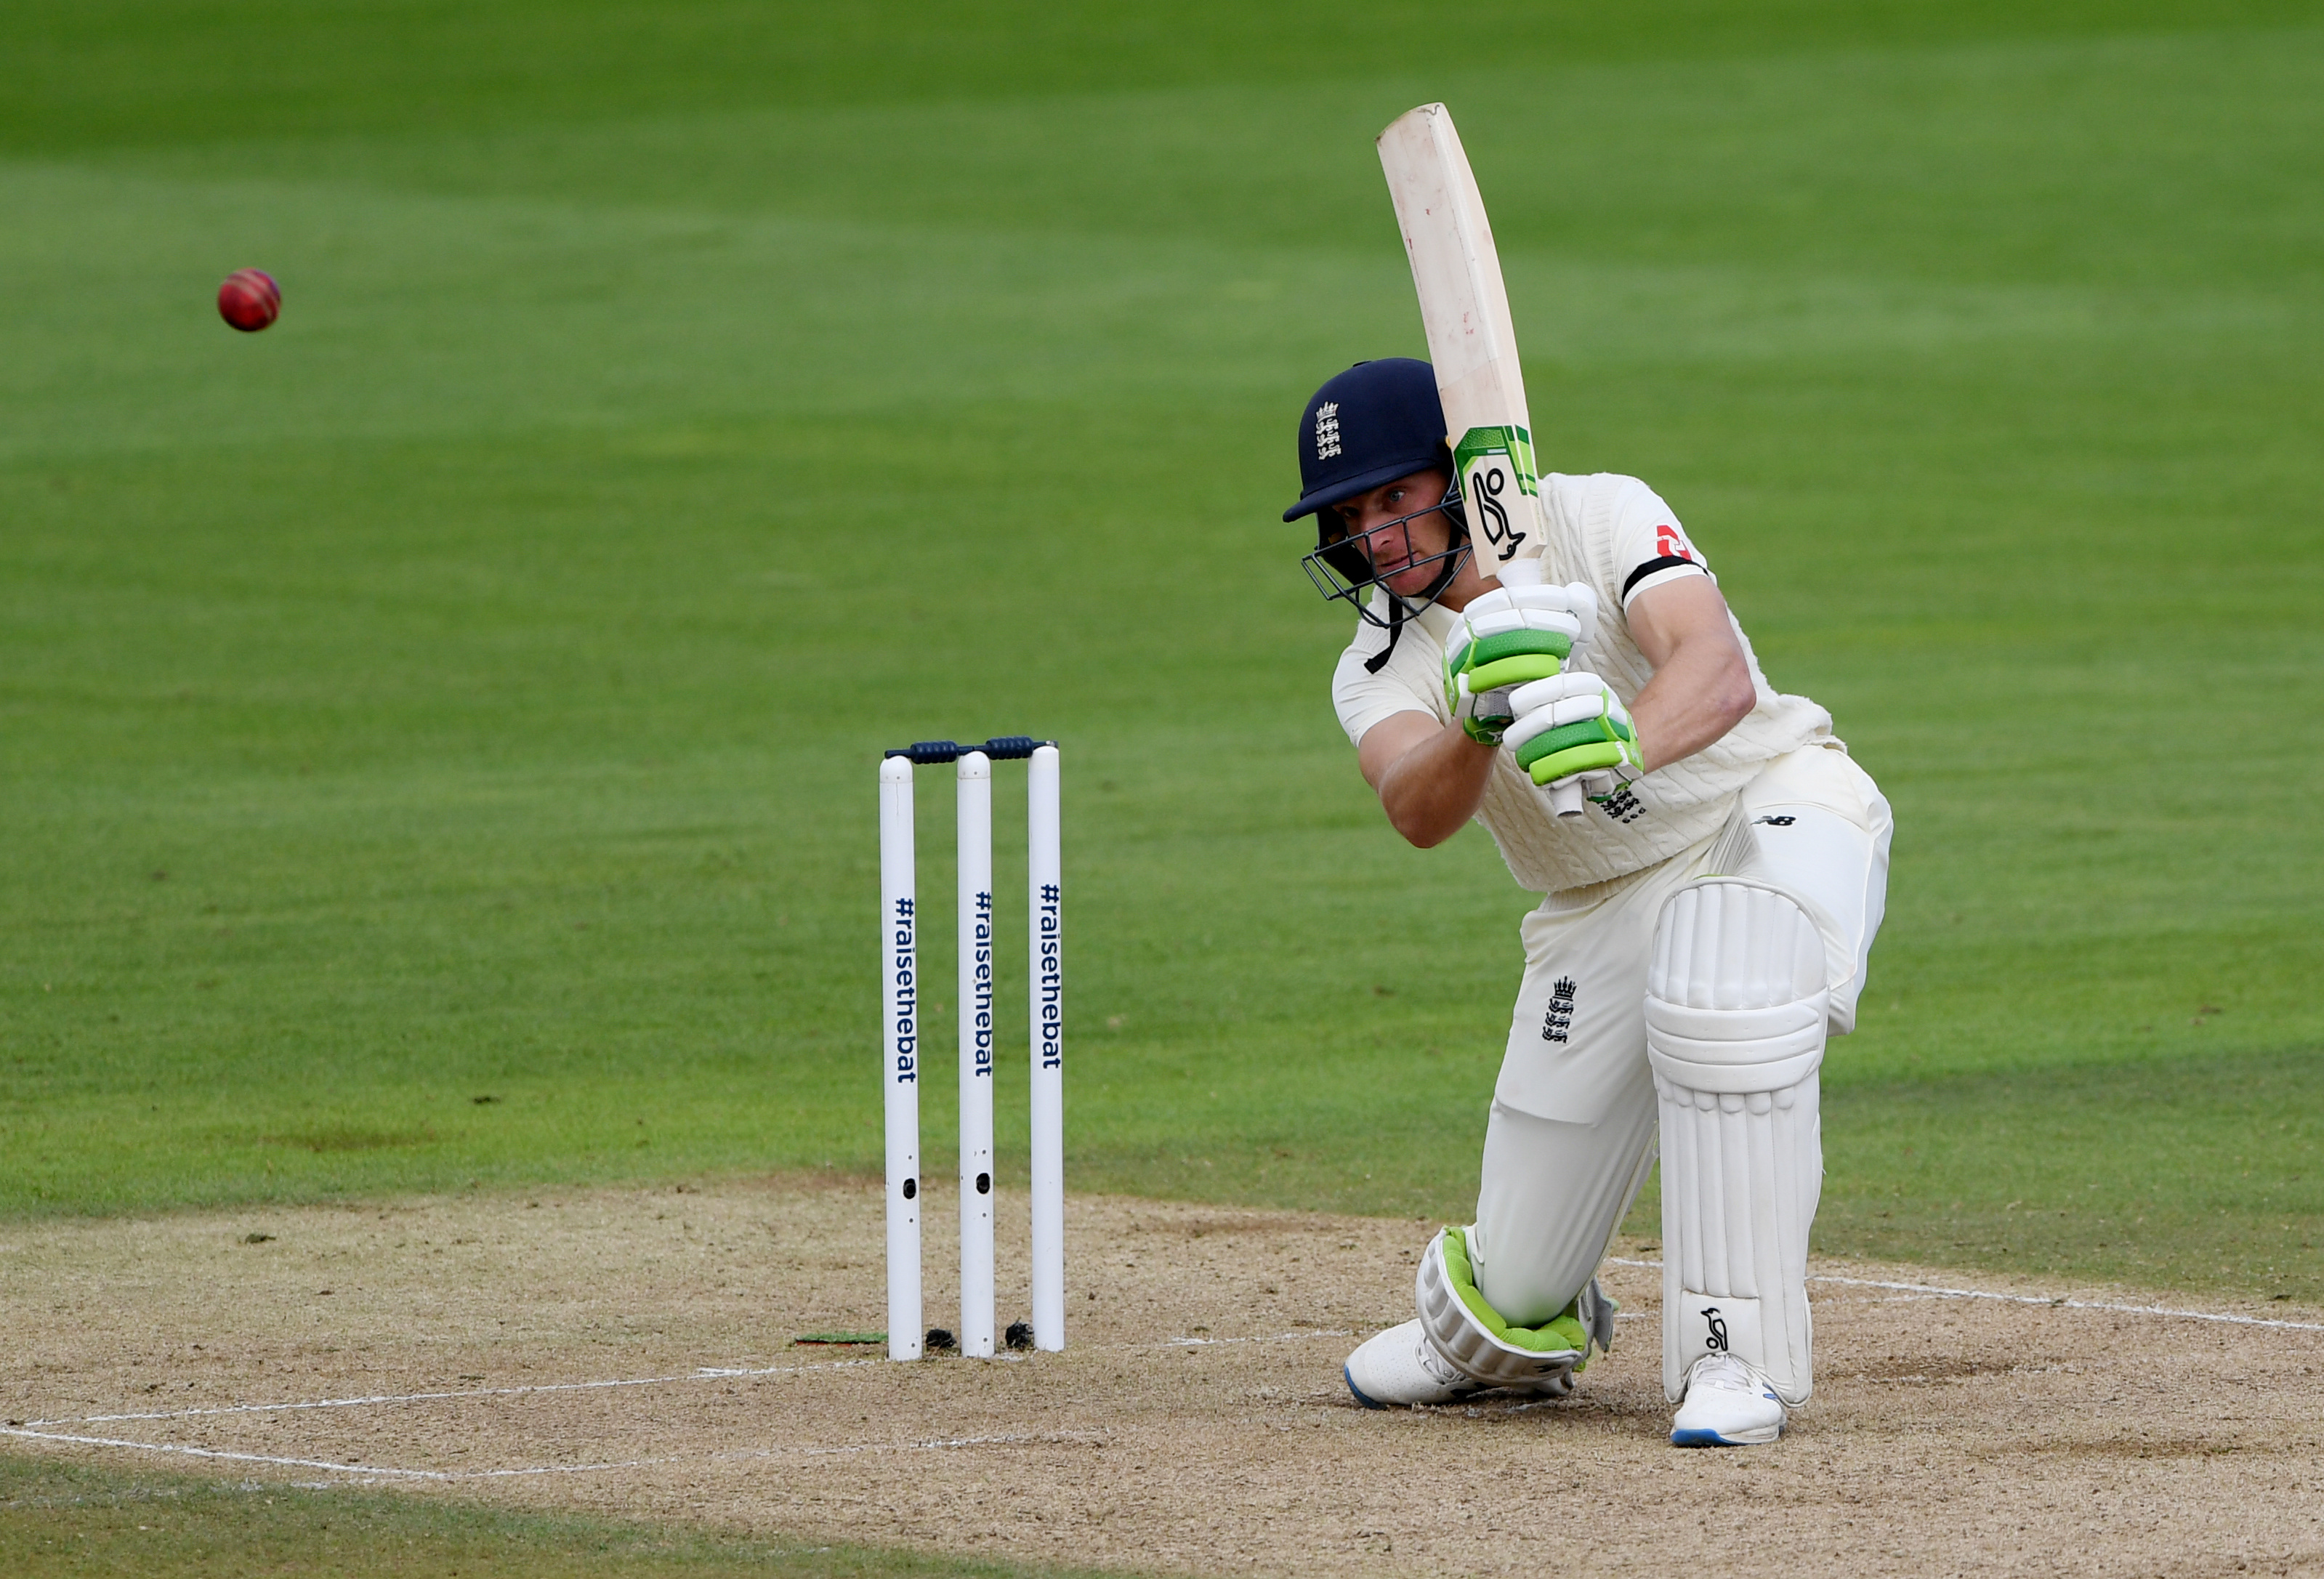 England's Jos Buttler in action. Photo: Reuters